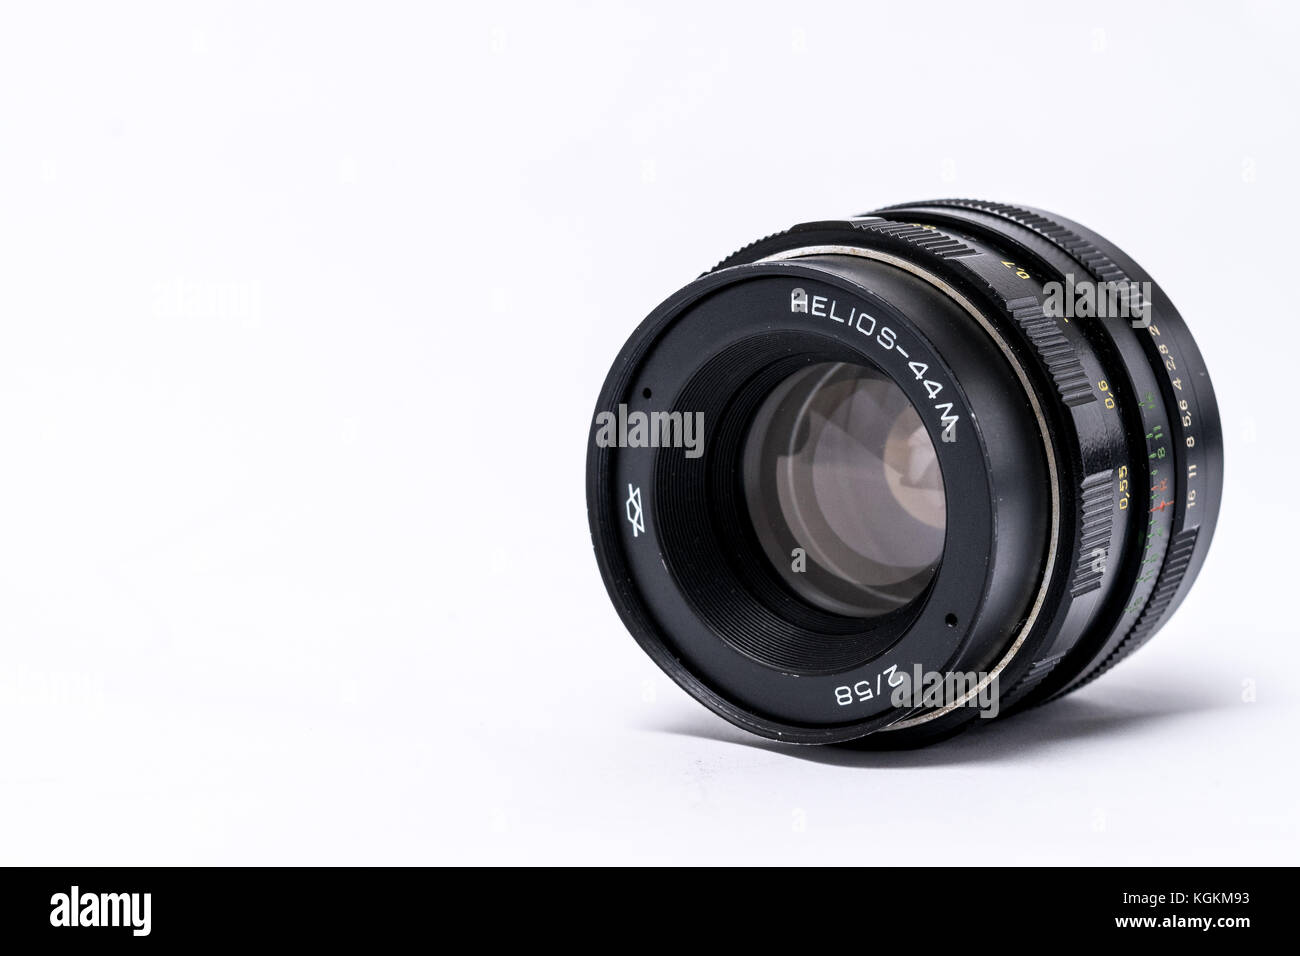 Helios 44-2 vintage USSR manual lens - Stock Image